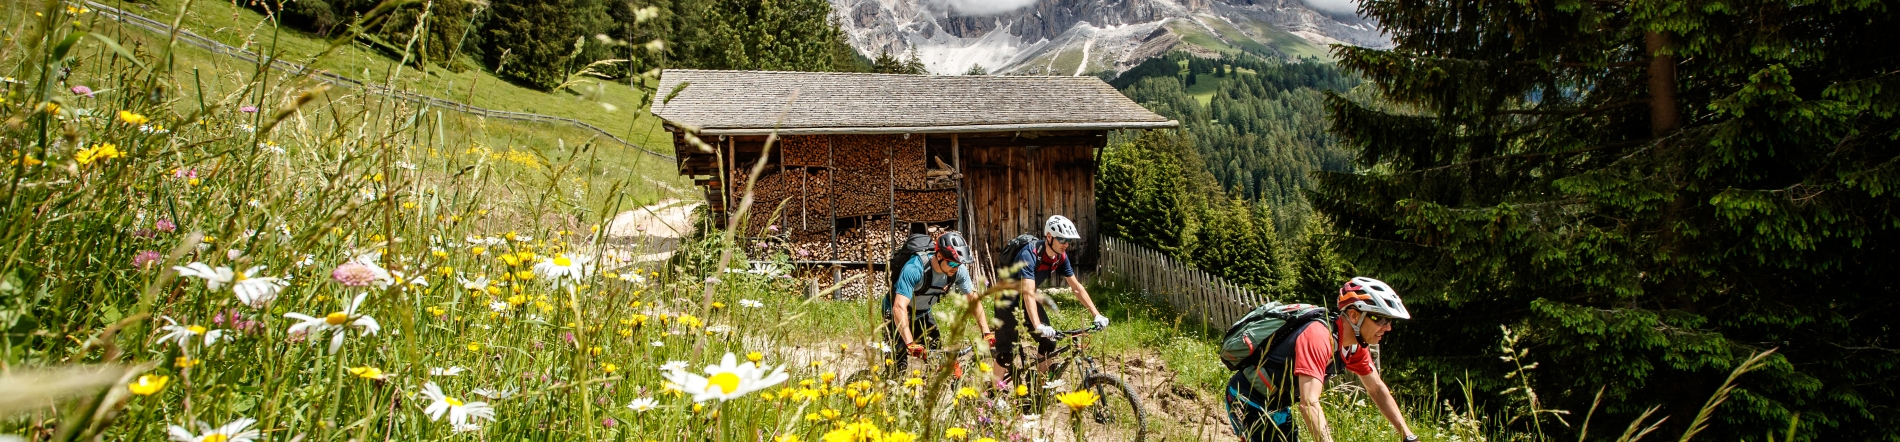 mountainbiken-in-suedtirol-2